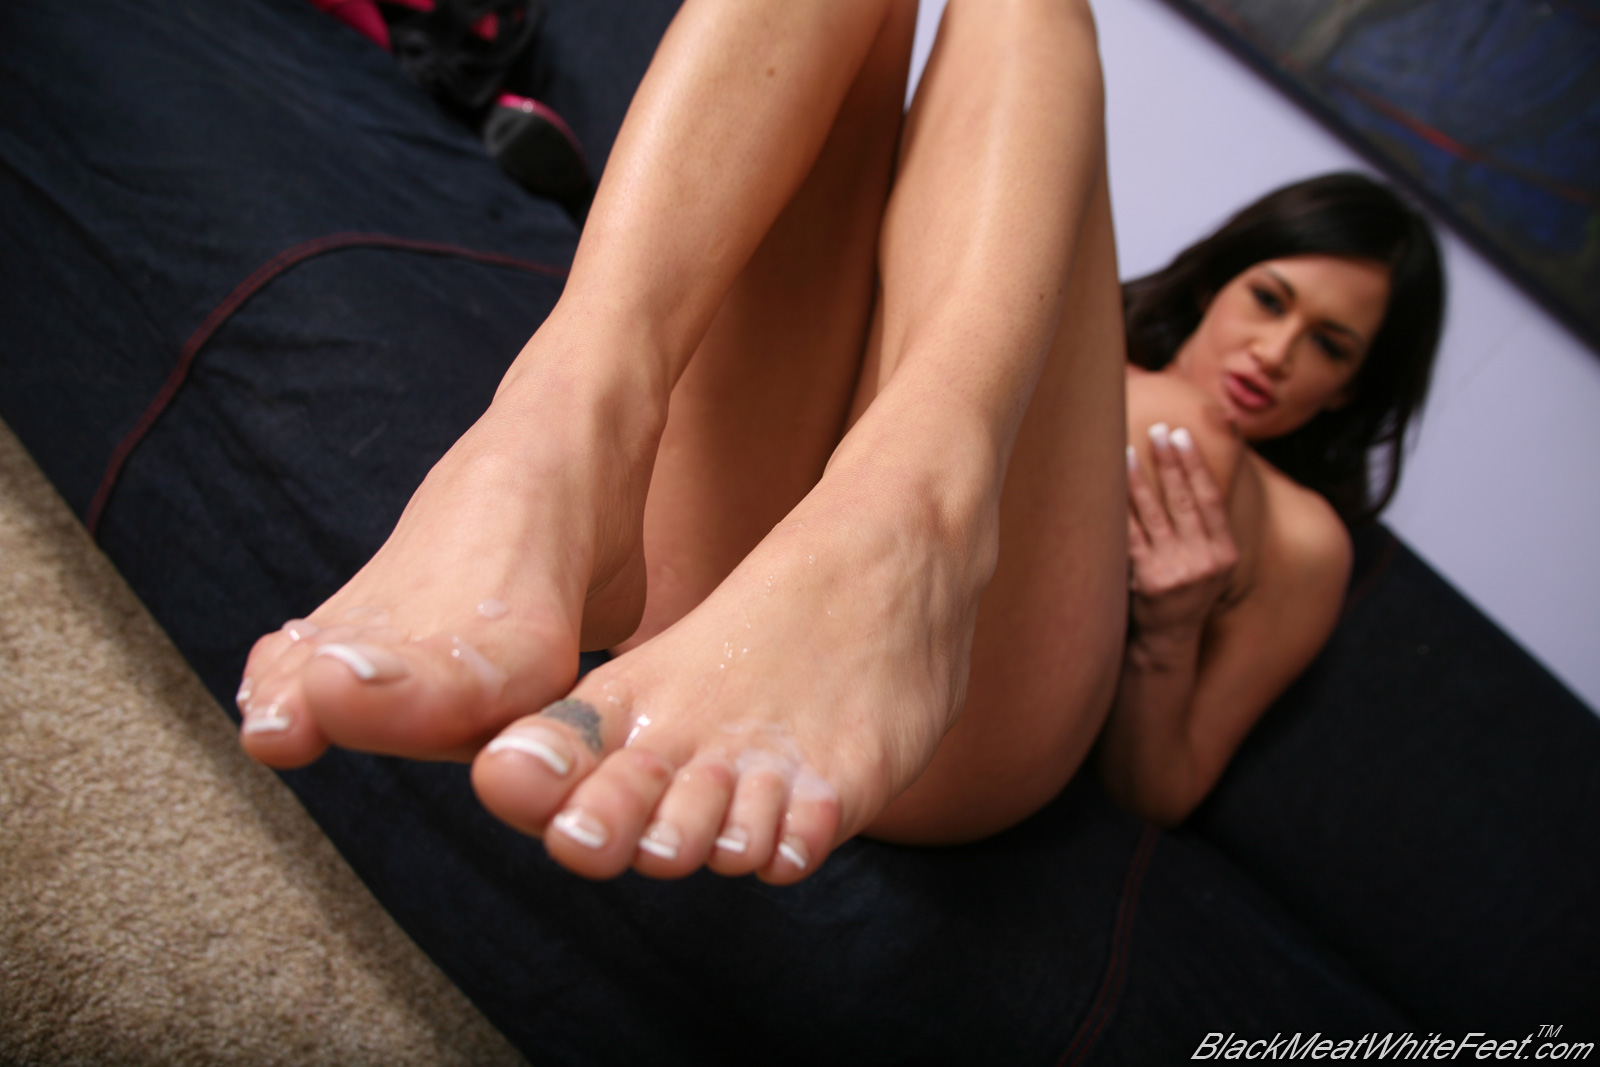 Tory lane footjob that